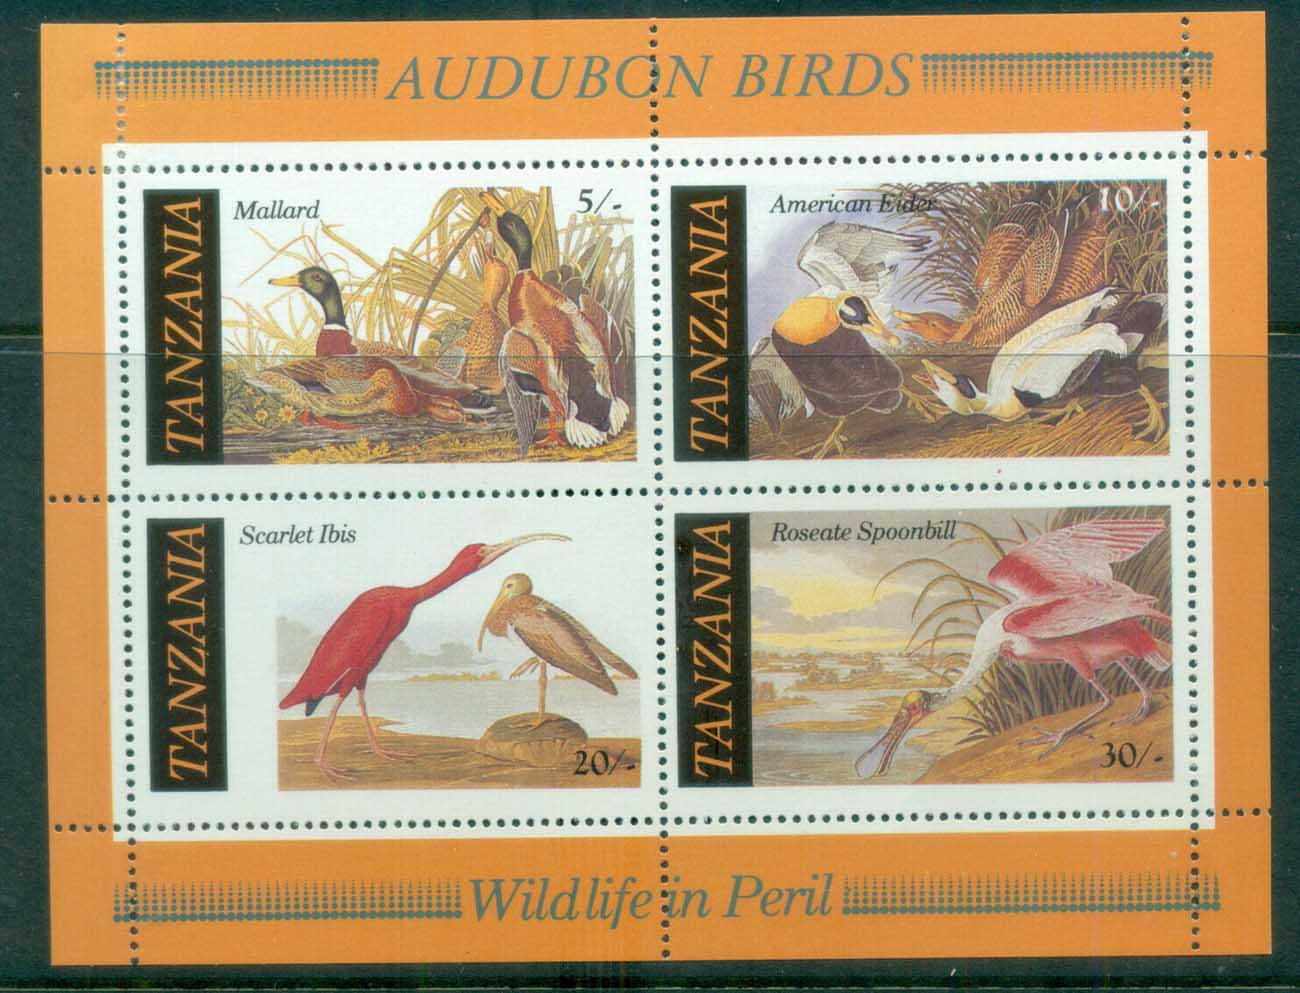 Tanzania 1986 Audubon Birds MS MLH lot84776